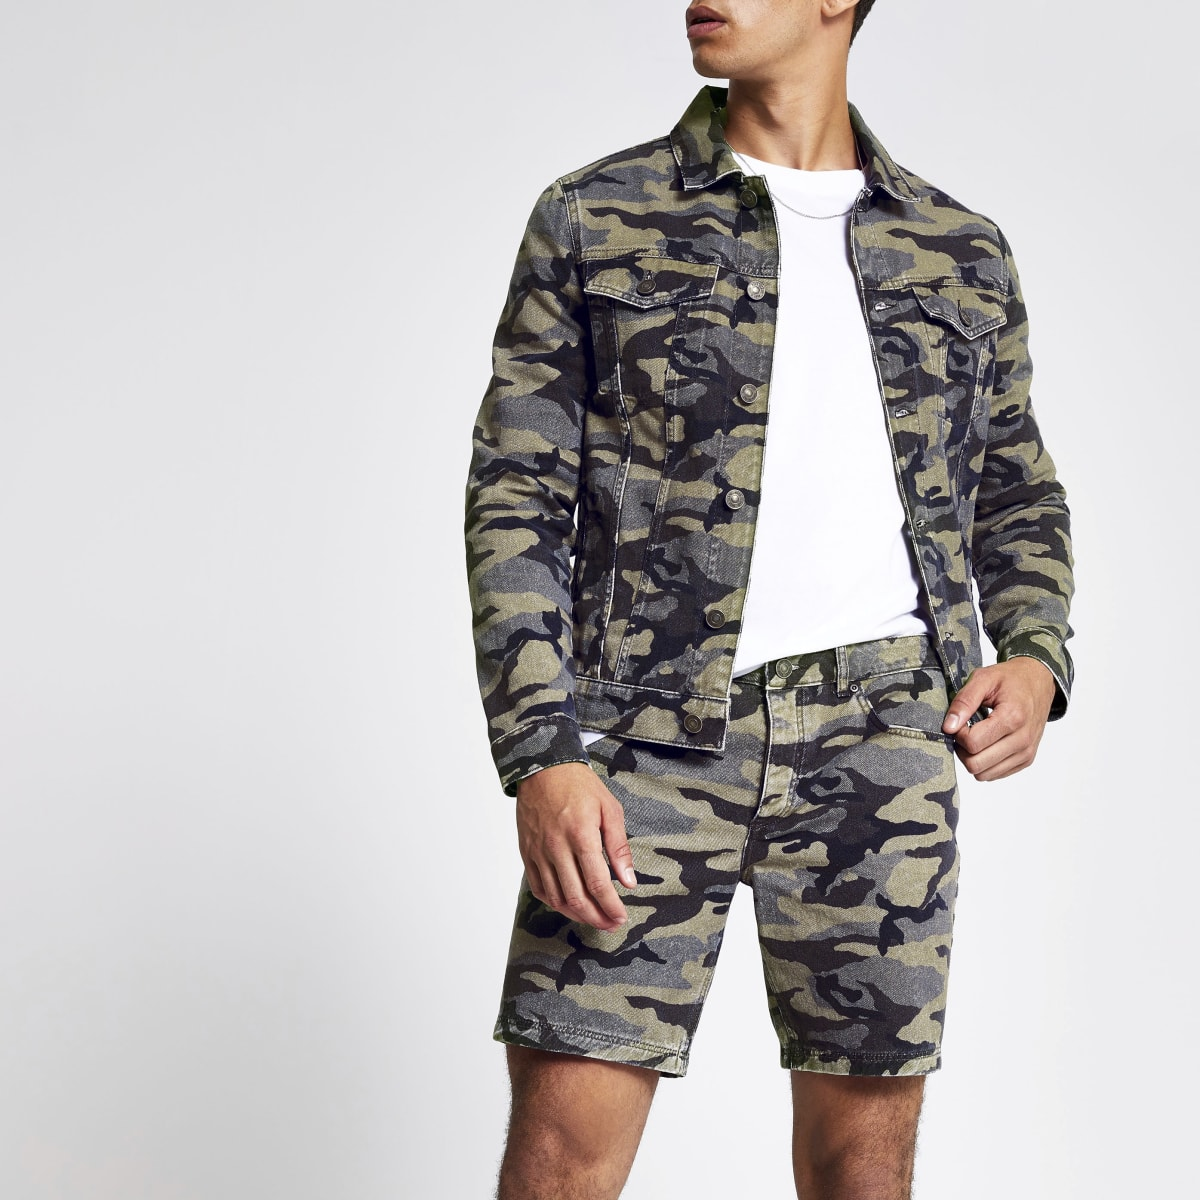 Khaki camo slim fit denim shorts